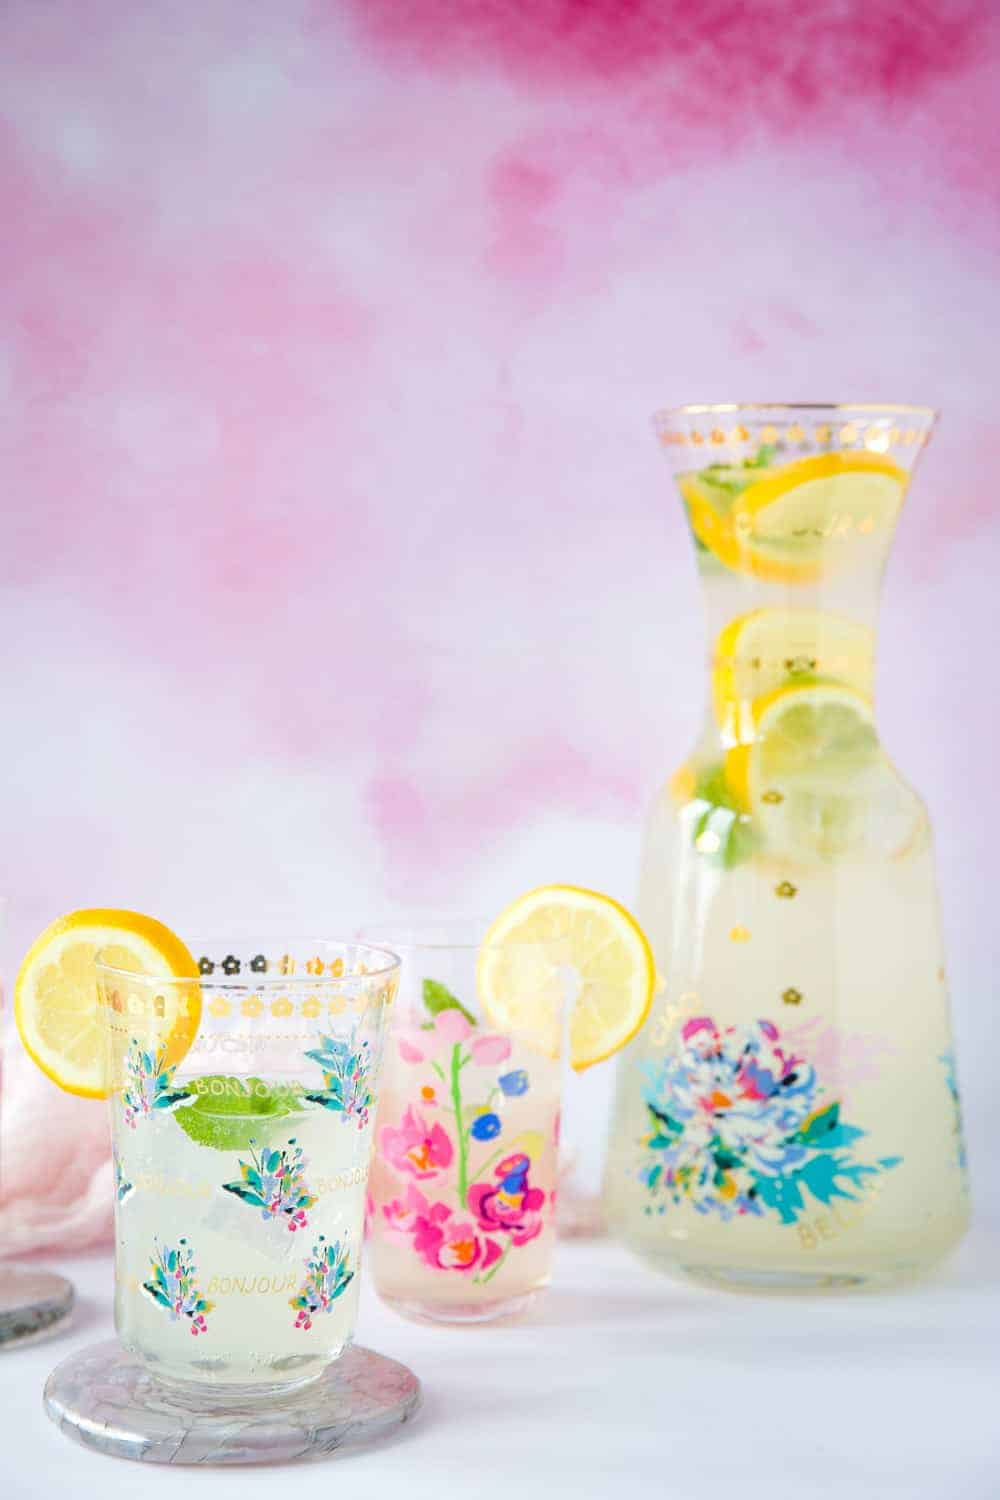 A jug of lemon cordial with slices of lemon and sprigs of mint